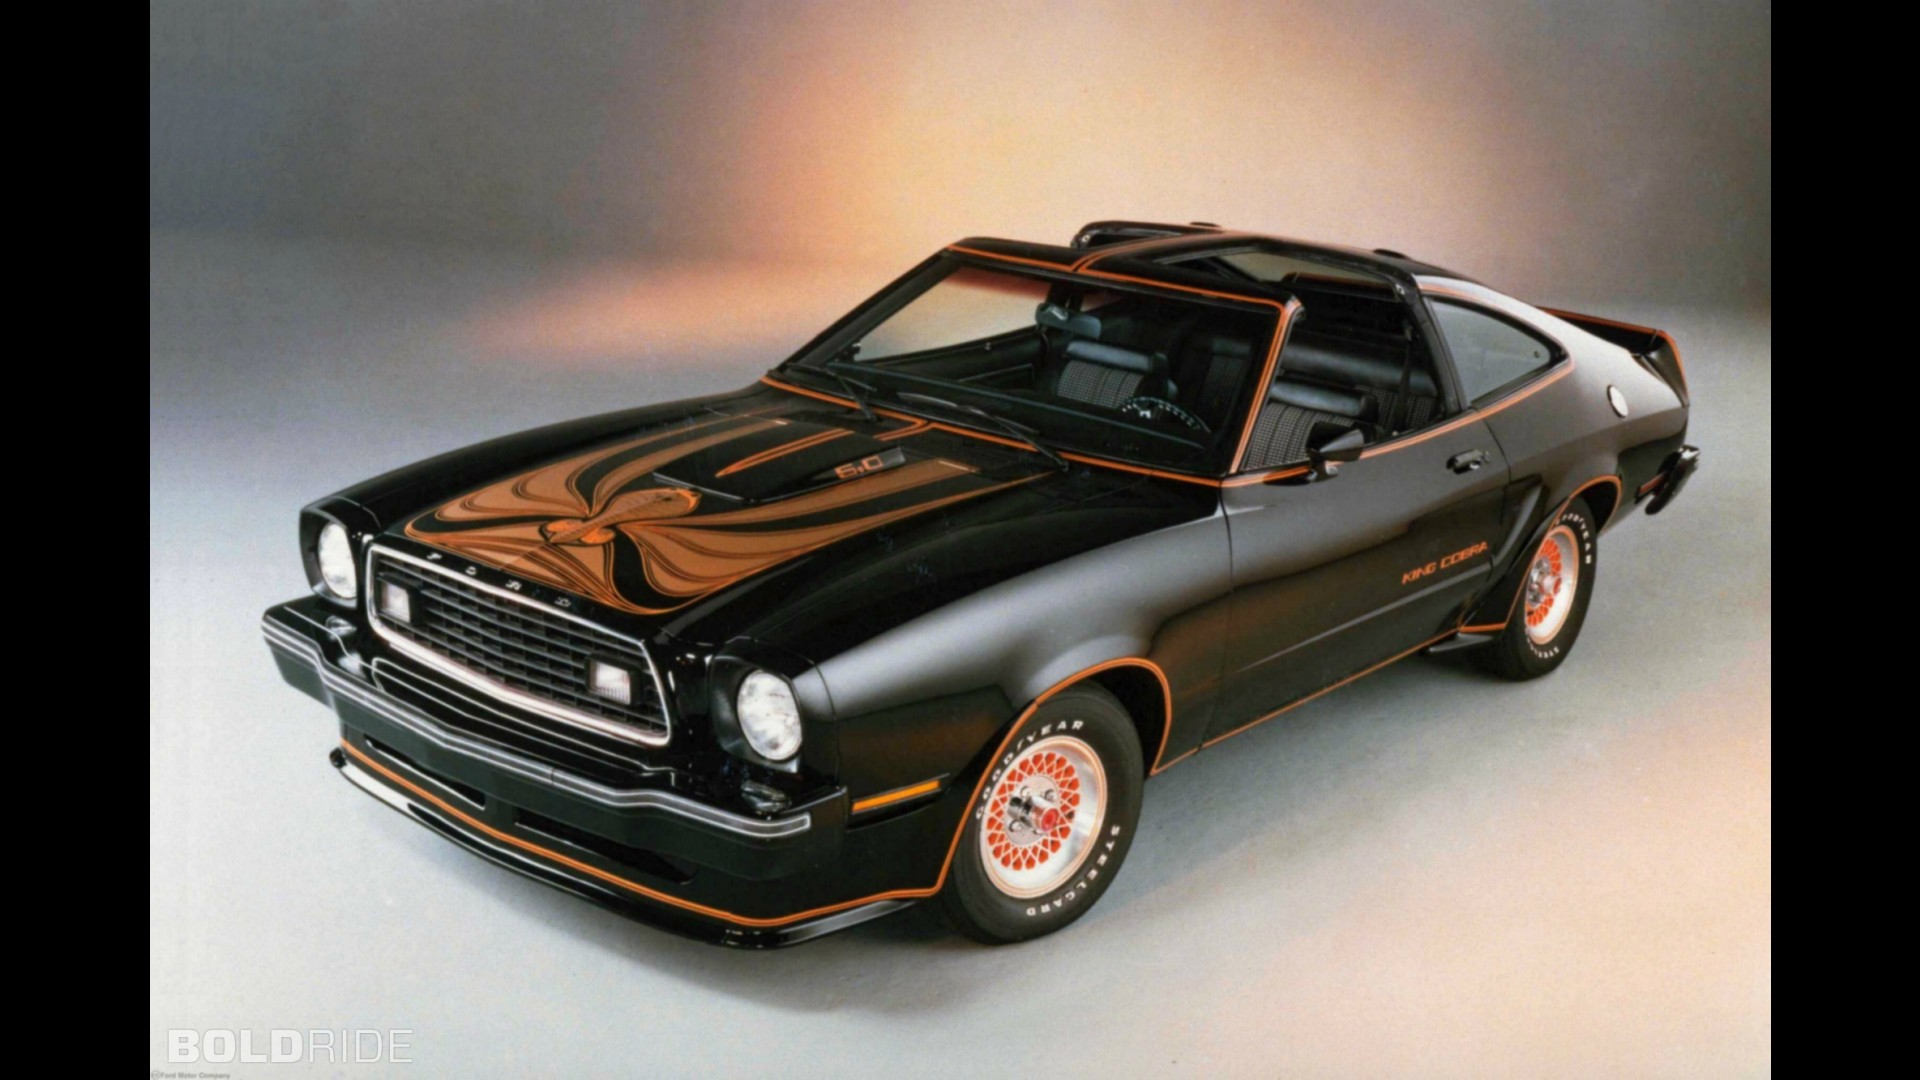 pin 1979 ford mustang view on pinterest. Black Bedroom Furniture Sets. Home Design Ideas